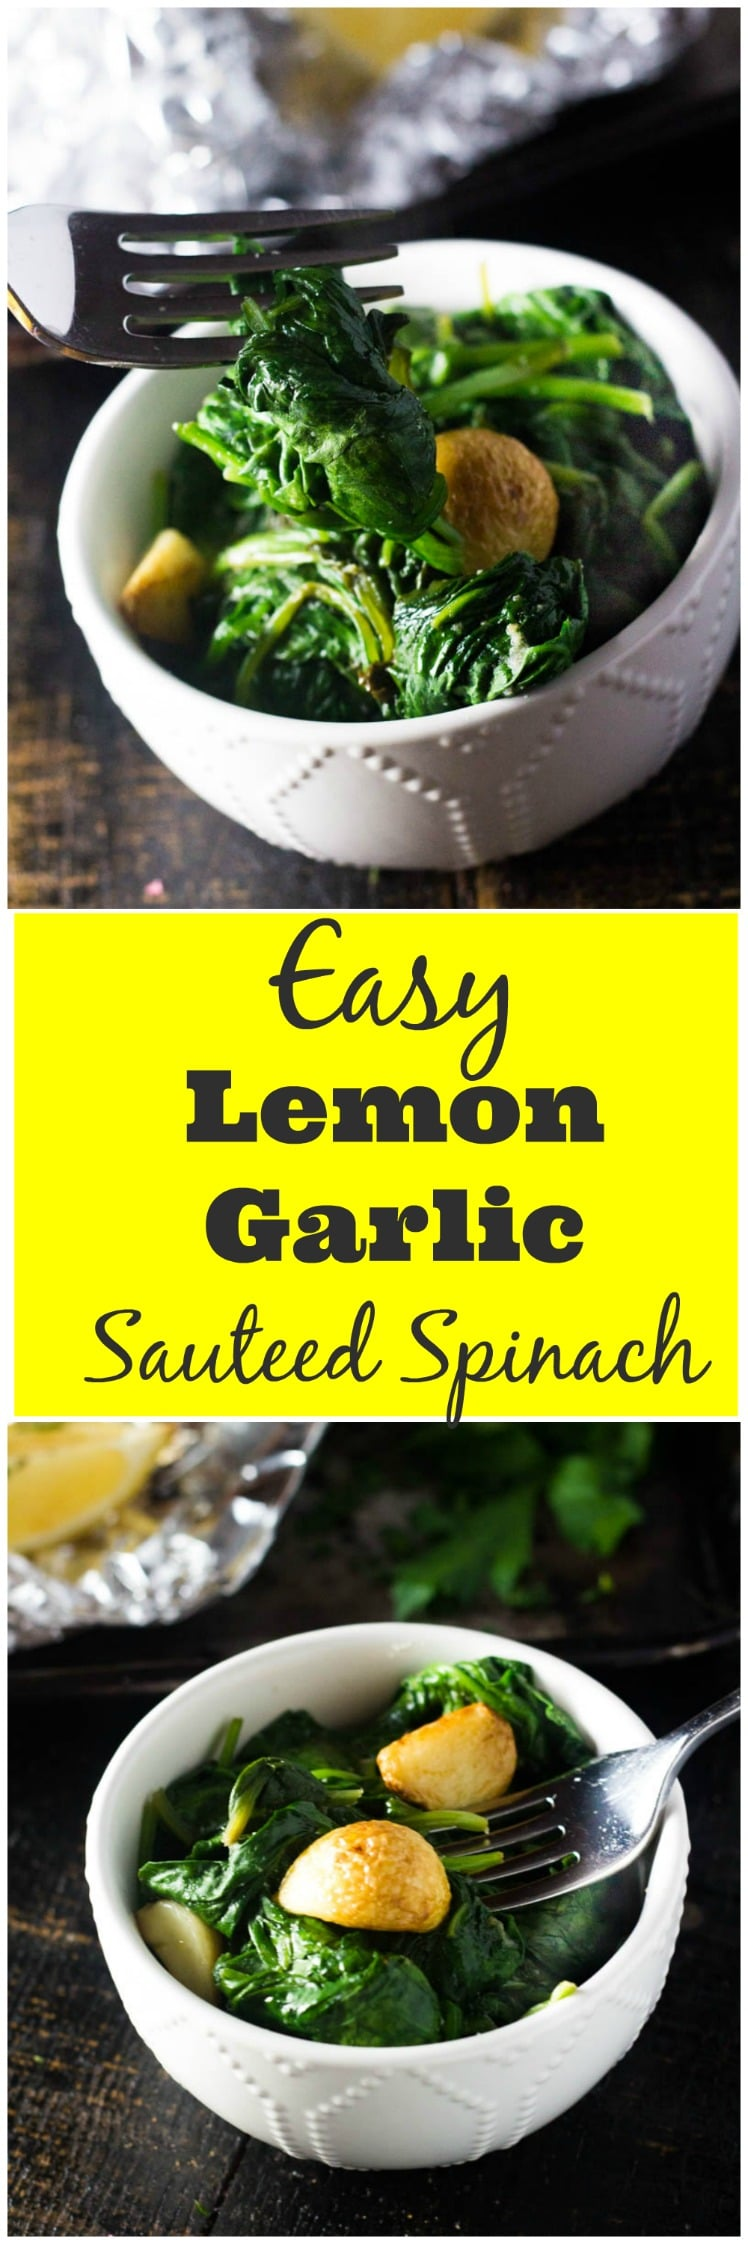 This lemon garlic sautéed spinach is the classic Italian restaurant side dish that everyone loves. This healthy side dish is loaded with garlicky flavor and light on the fat and it comes together in just 5 minutes.